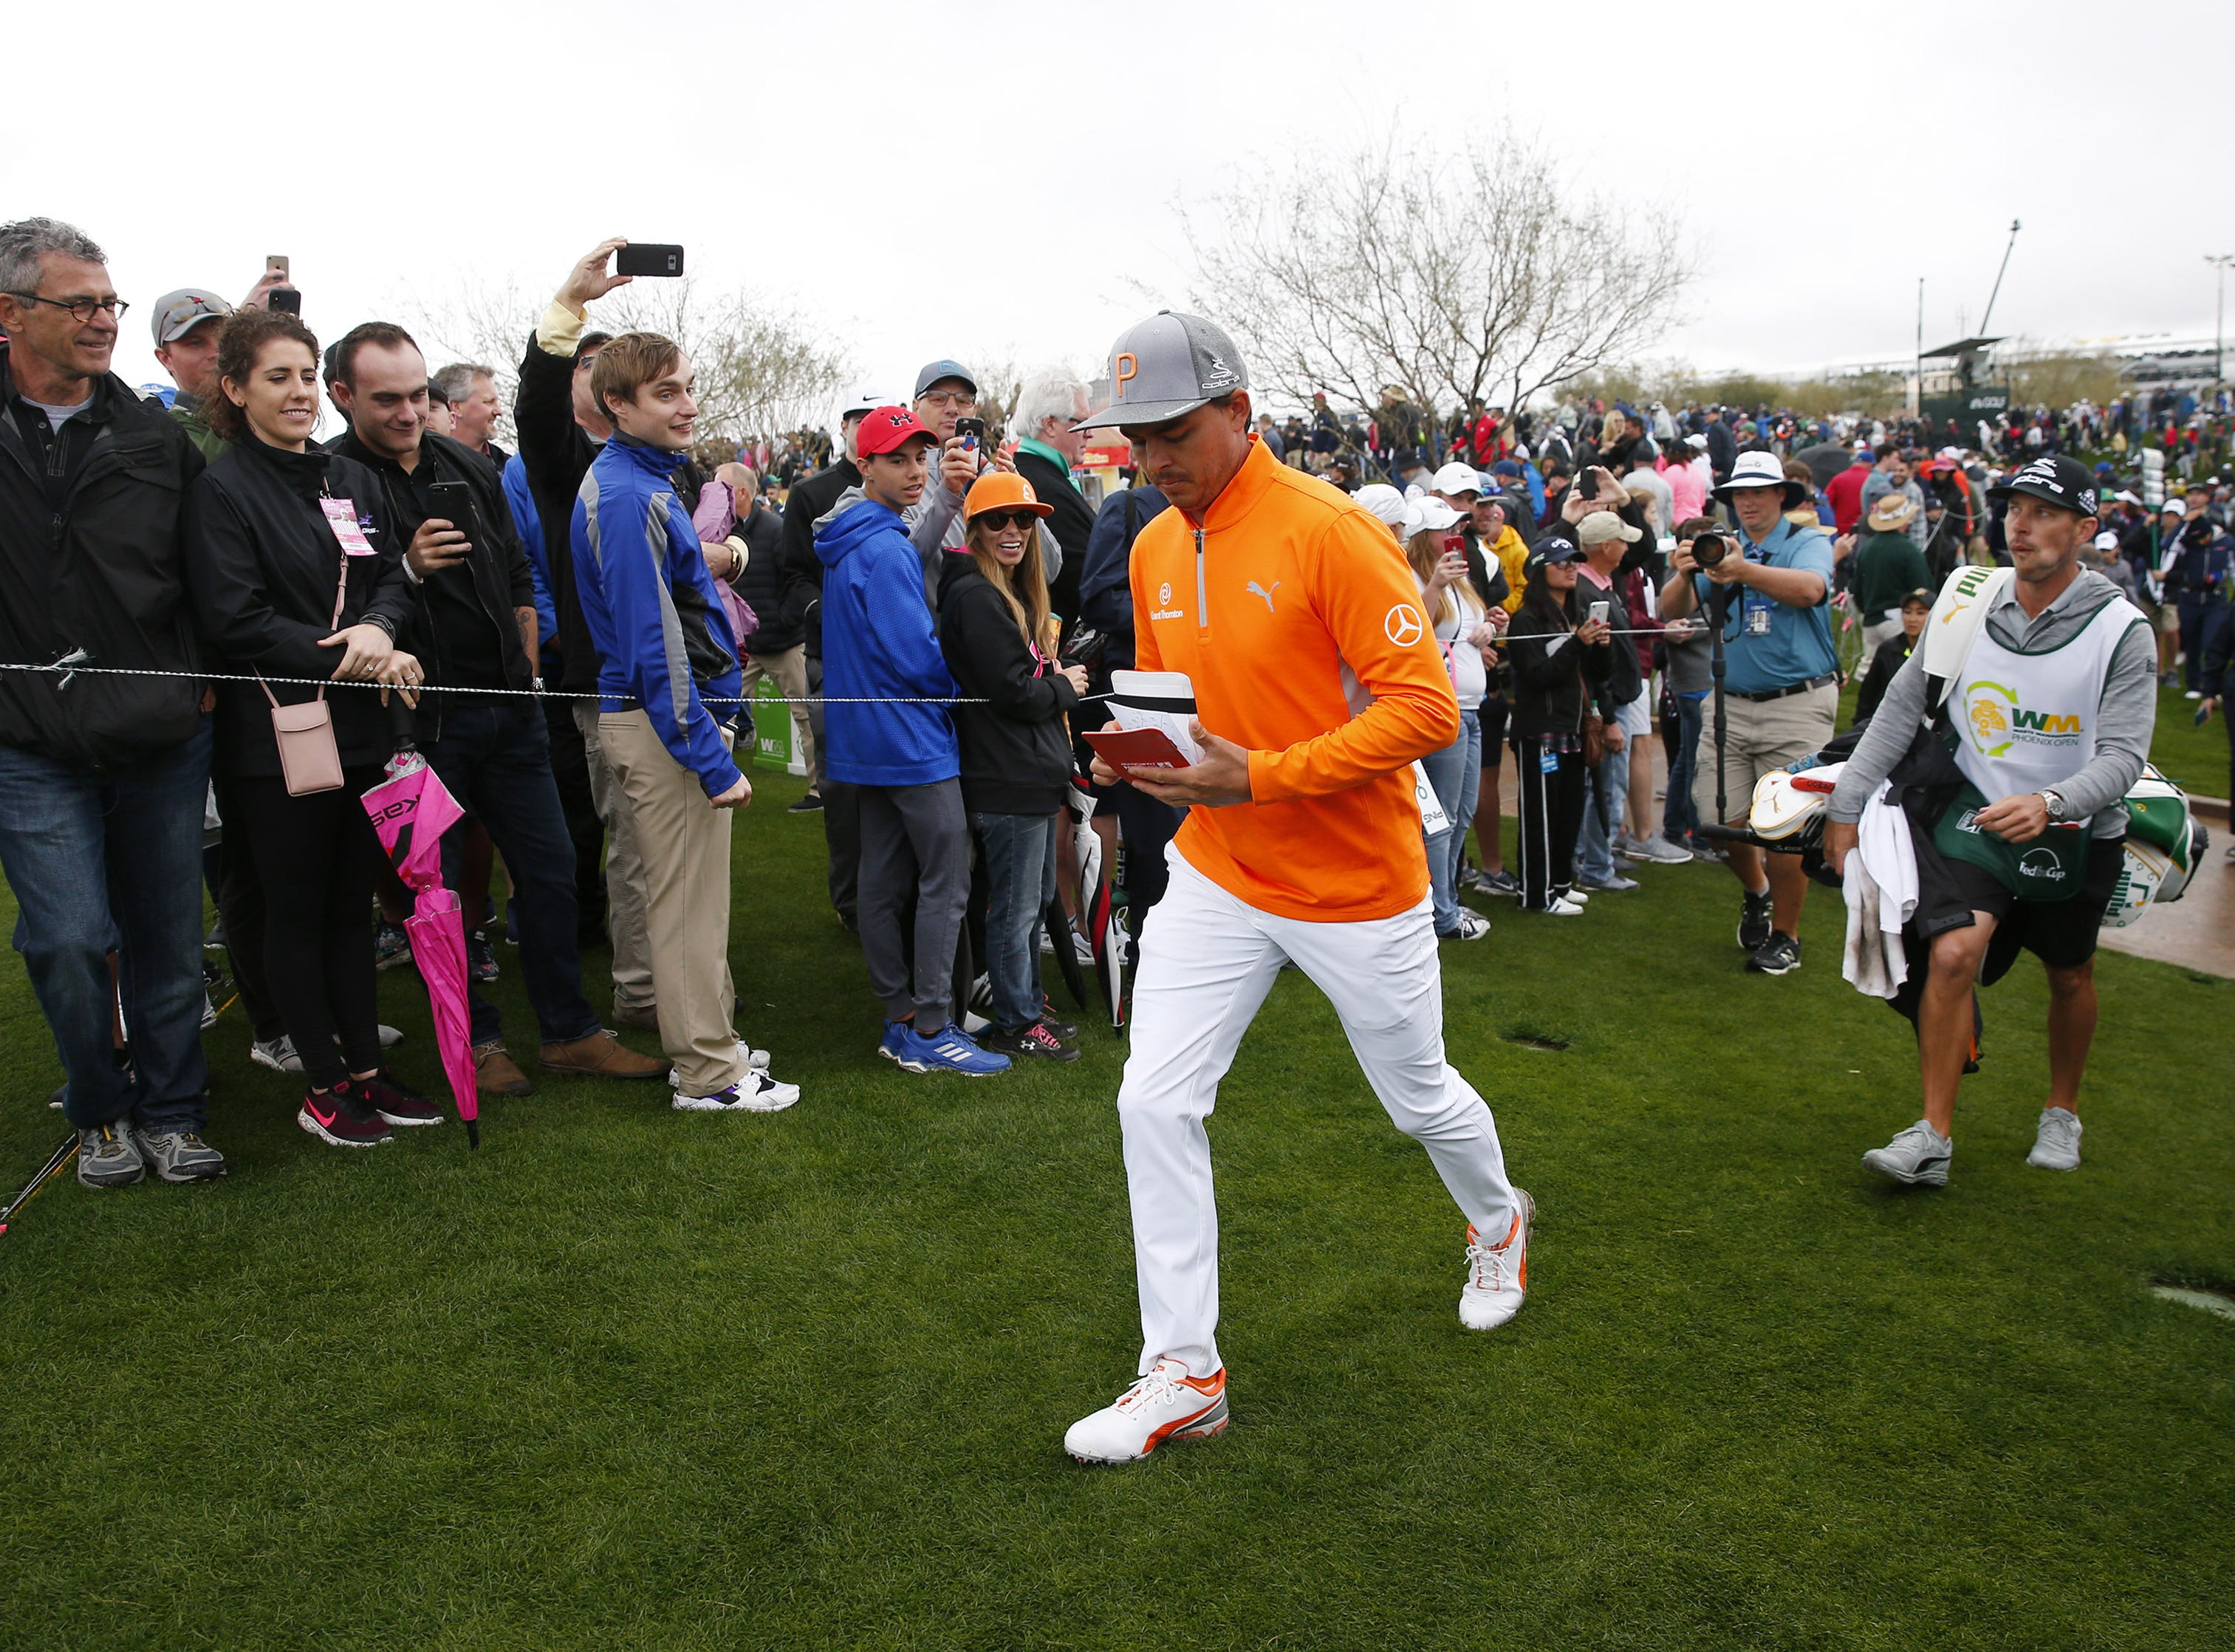 Rickie Fowler walks to the ninth tee box during the final round of the Waste Management Phoenix Open at the TPC Scottsdale Feb. 3, 2019.